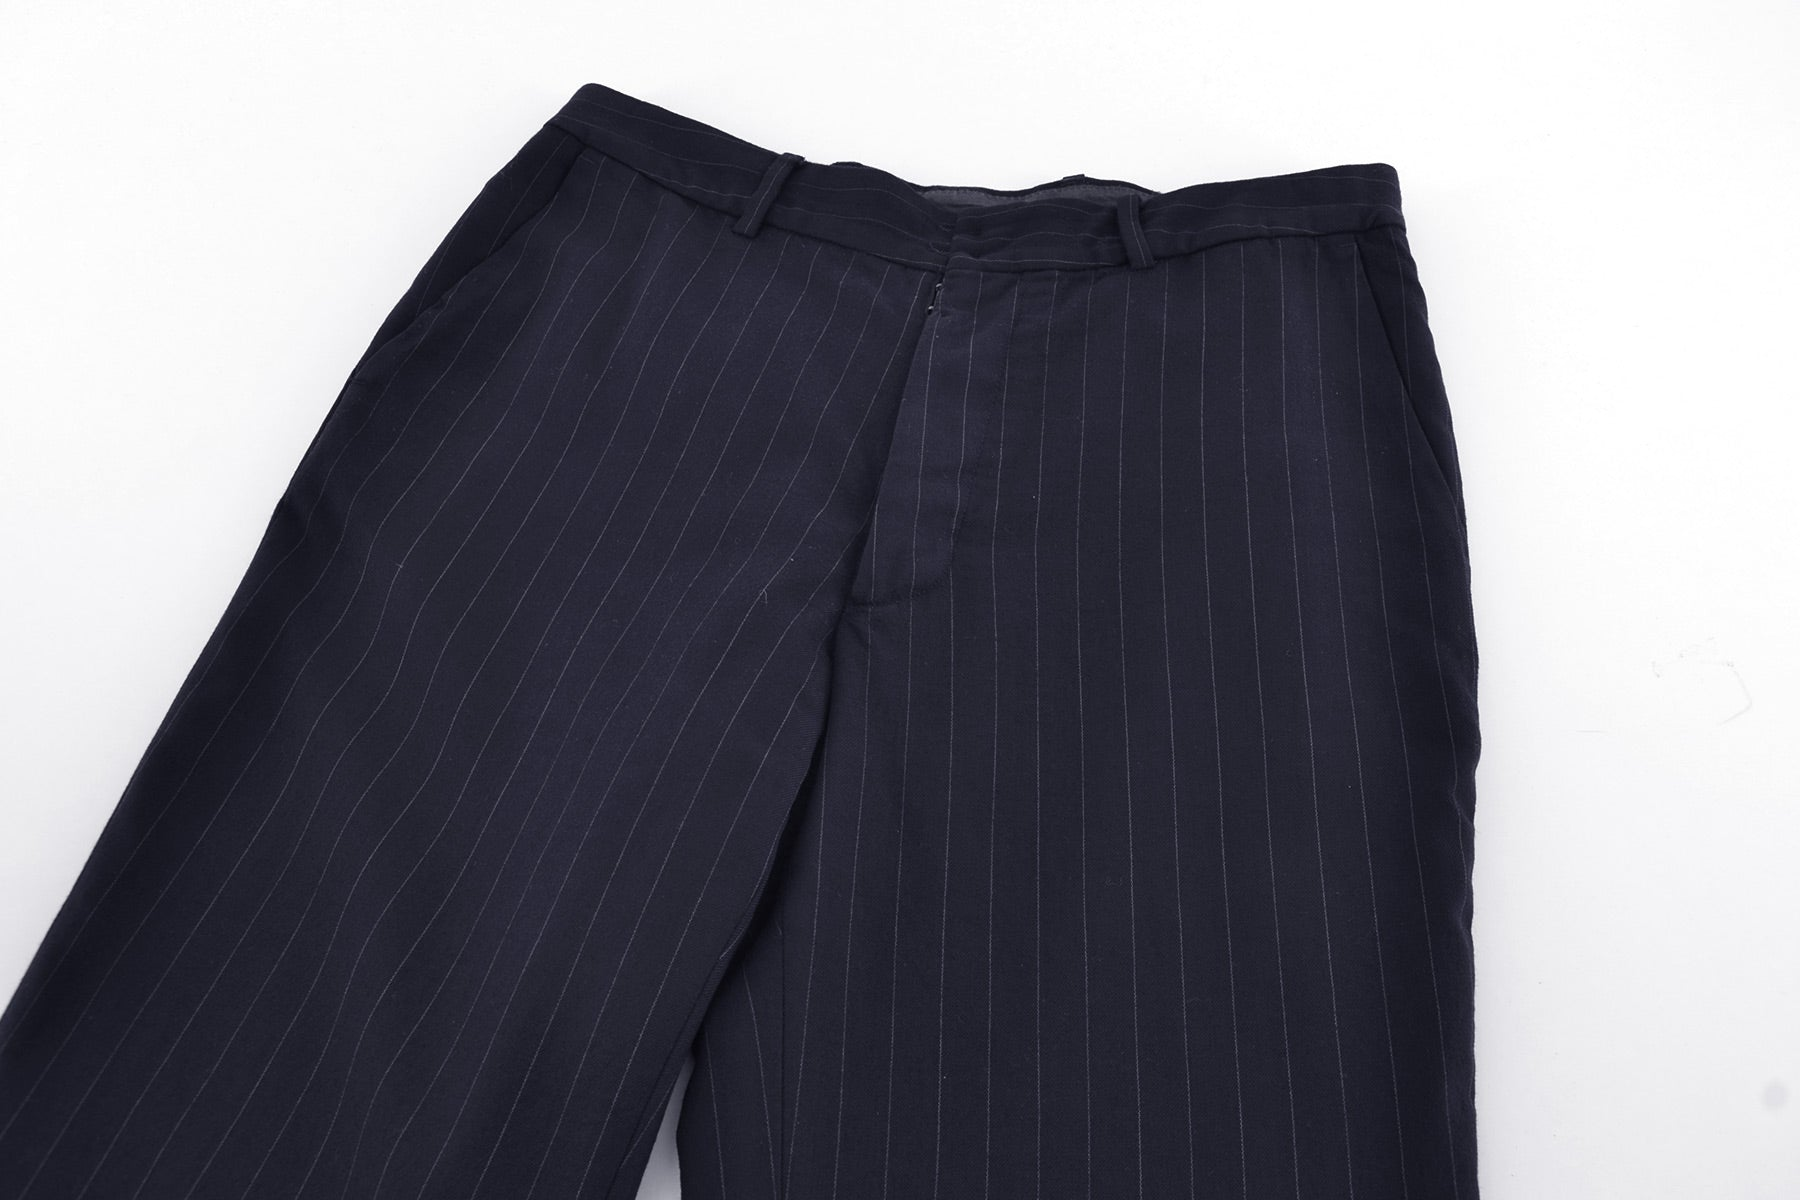 1999 A/W ANATOMICAL PANTS IN A PINSTRIPE HEAVY WOOL